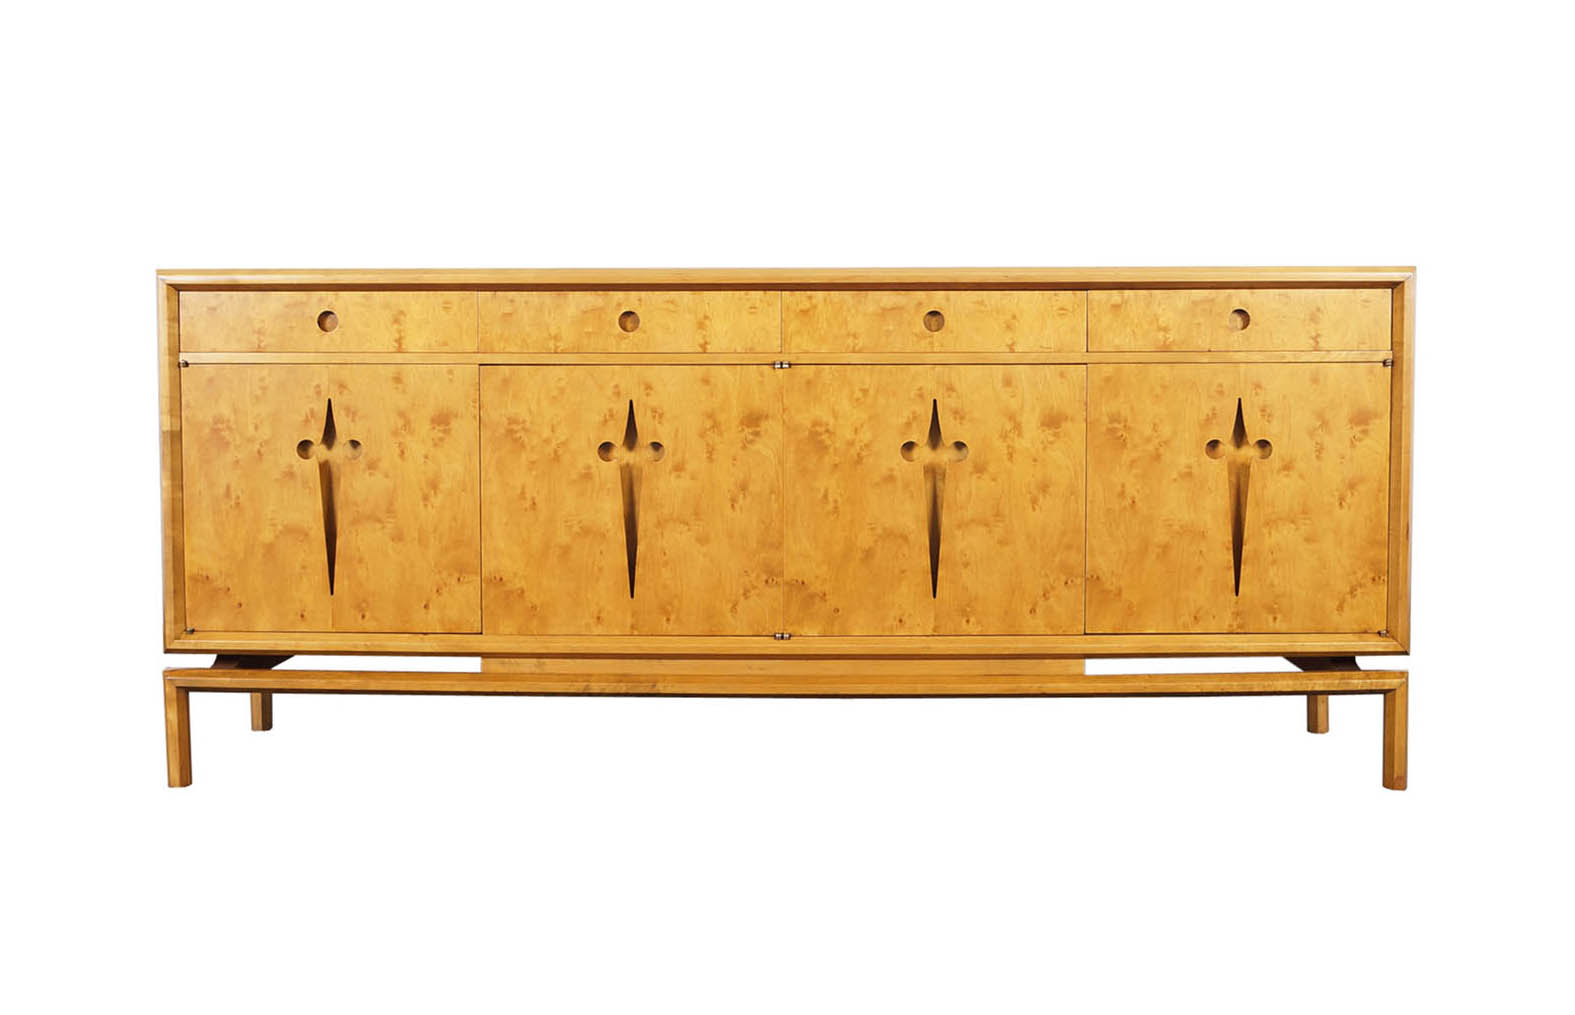 Vintage Maple Burl Credenza by Edmond Spence